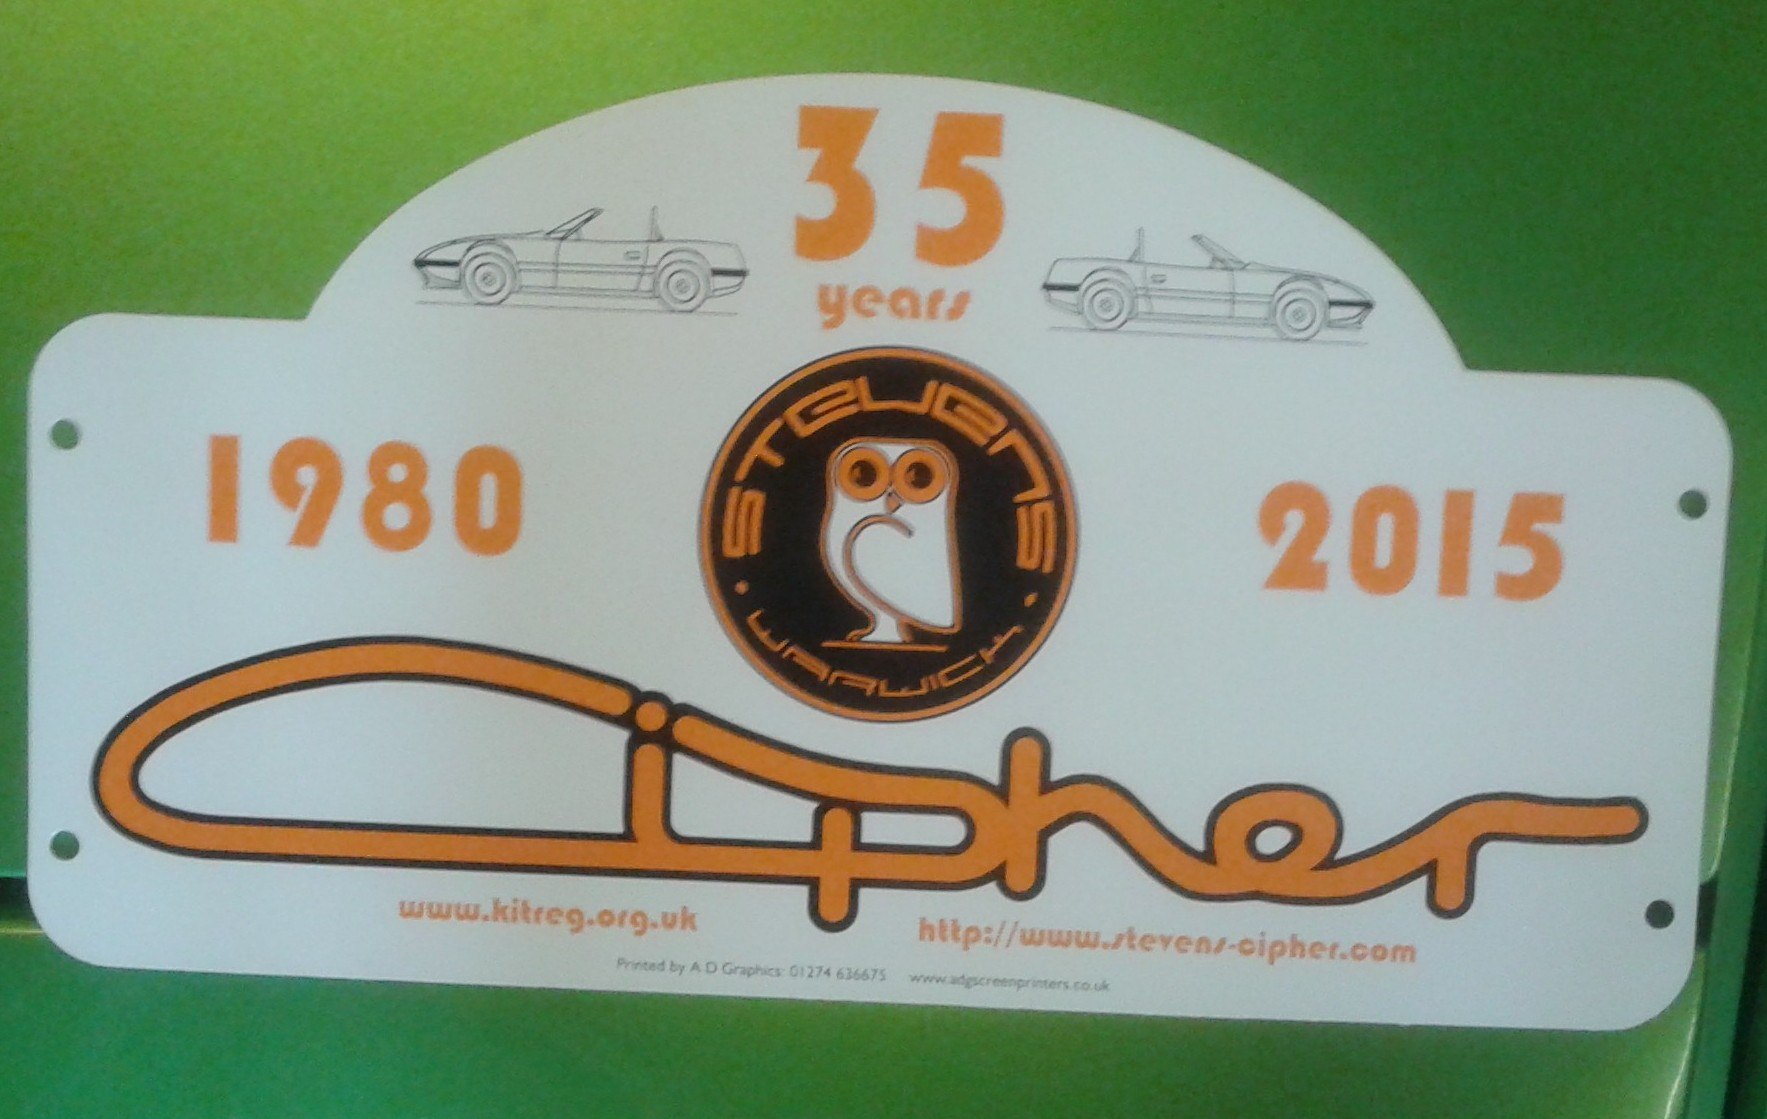 Cipher cars 35 year rally plate